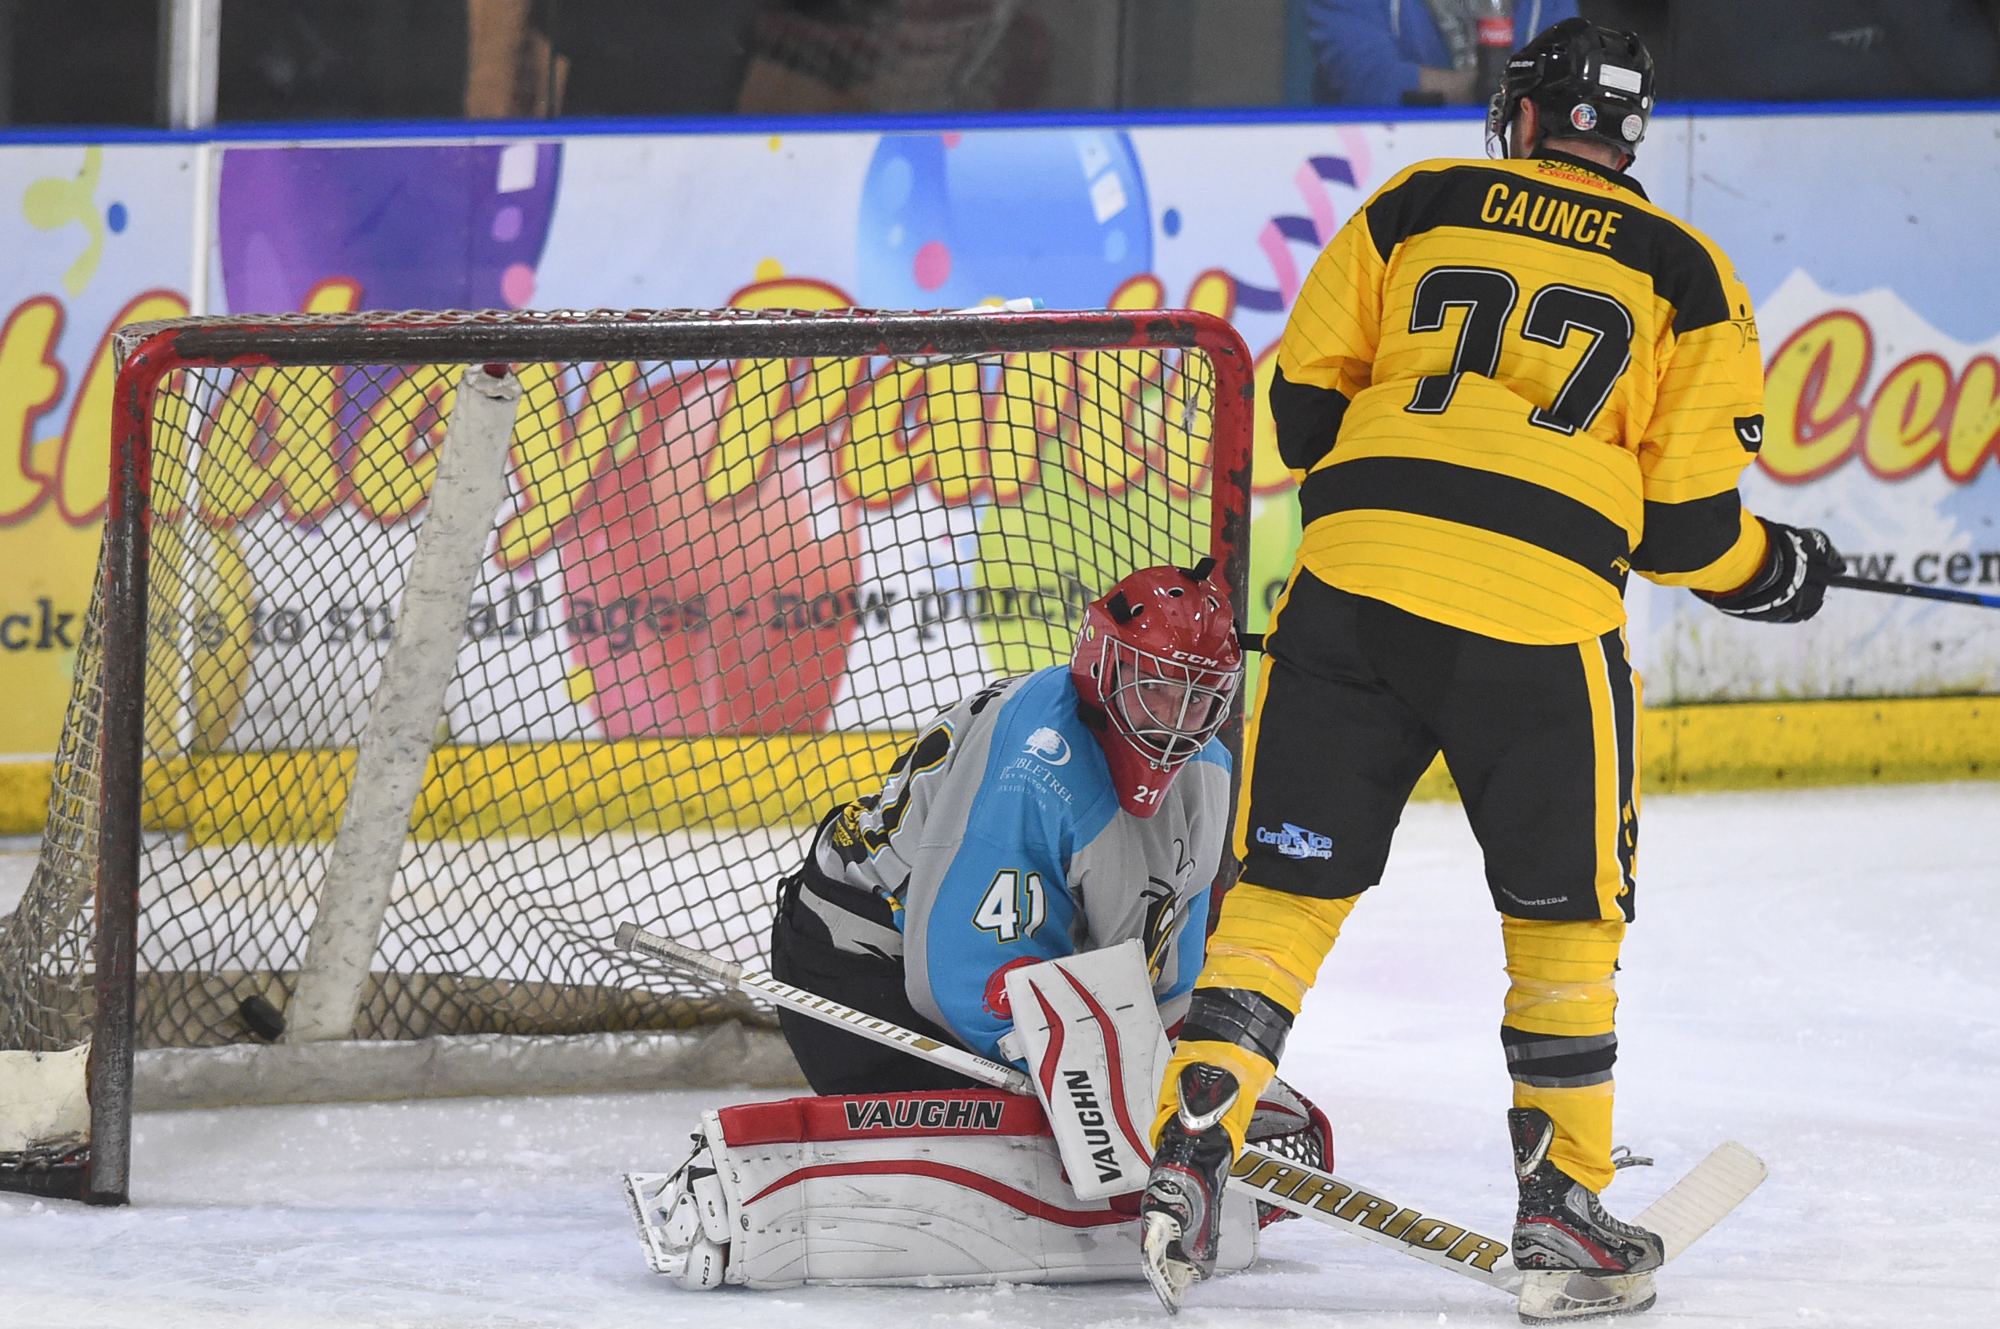 NiHL Player of the Month